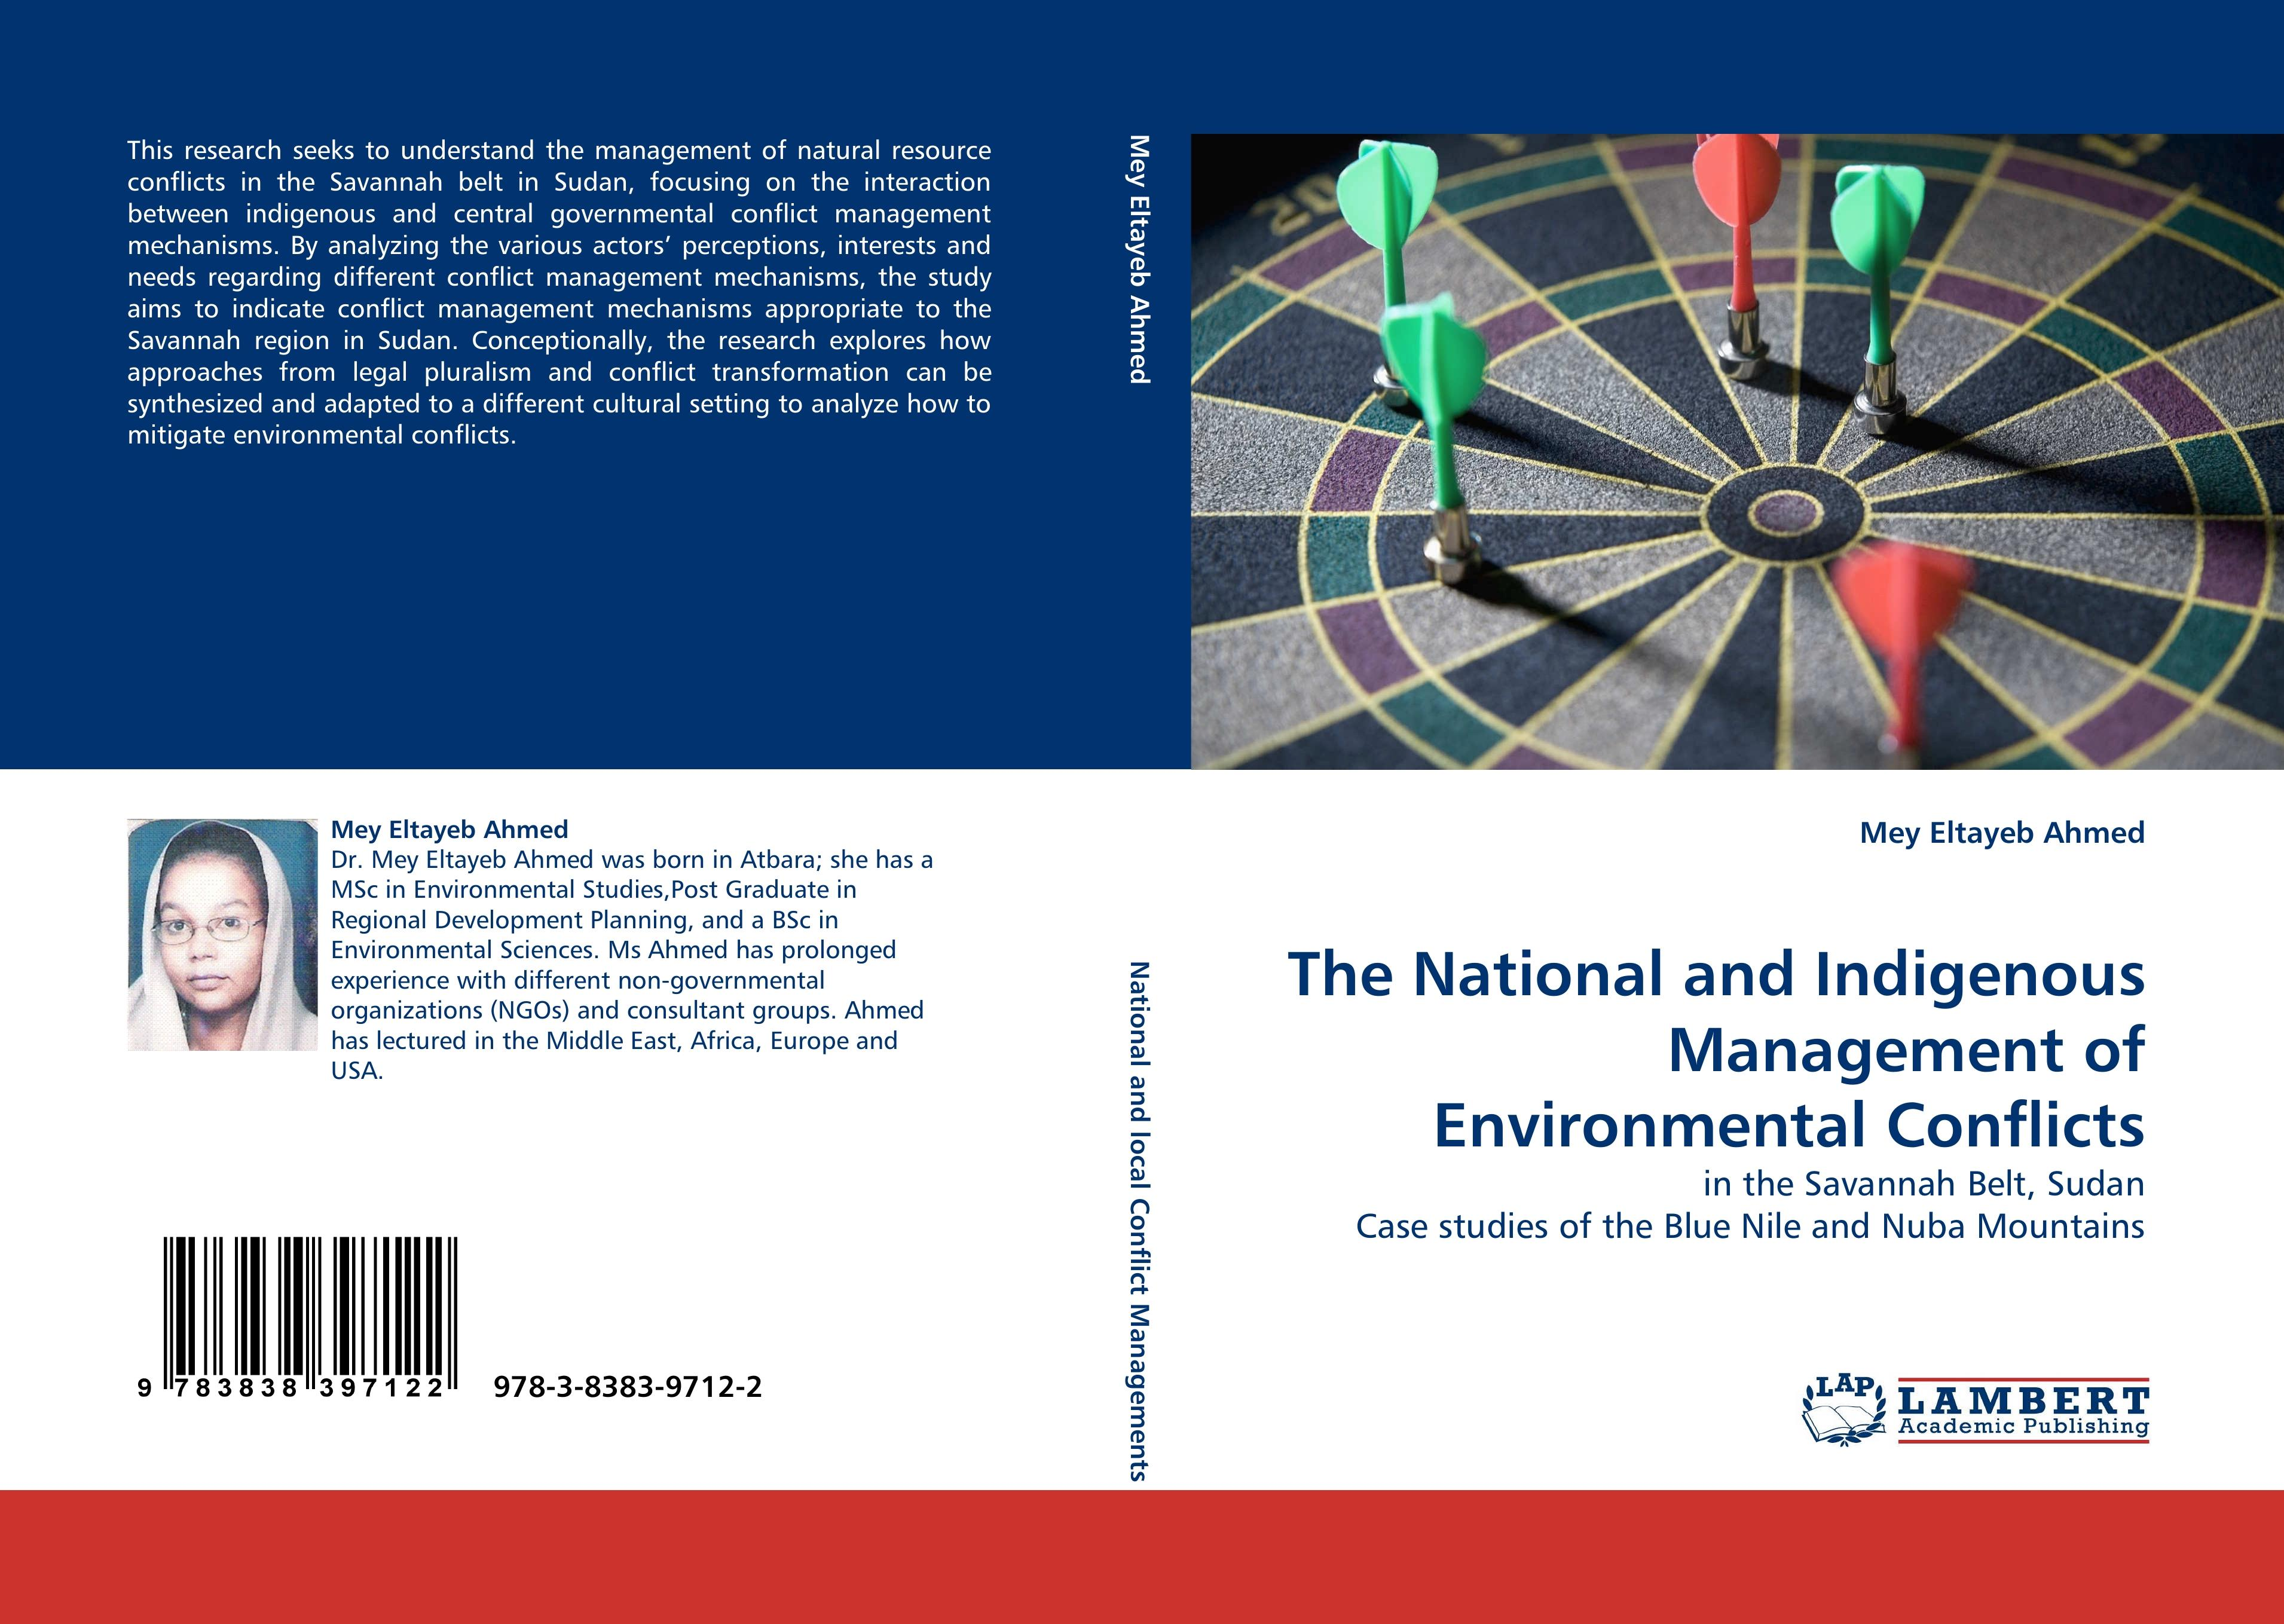 The National and Indigenous Management of Environmental Conflicts  in the Savannah Belt, Sudan Case studies of the Blue Nile and Nuba Mountains  Mey Eltayeb Ahmed  Taschenbuch  Paperback  2010 - Ahmed, Mey Eltayeb